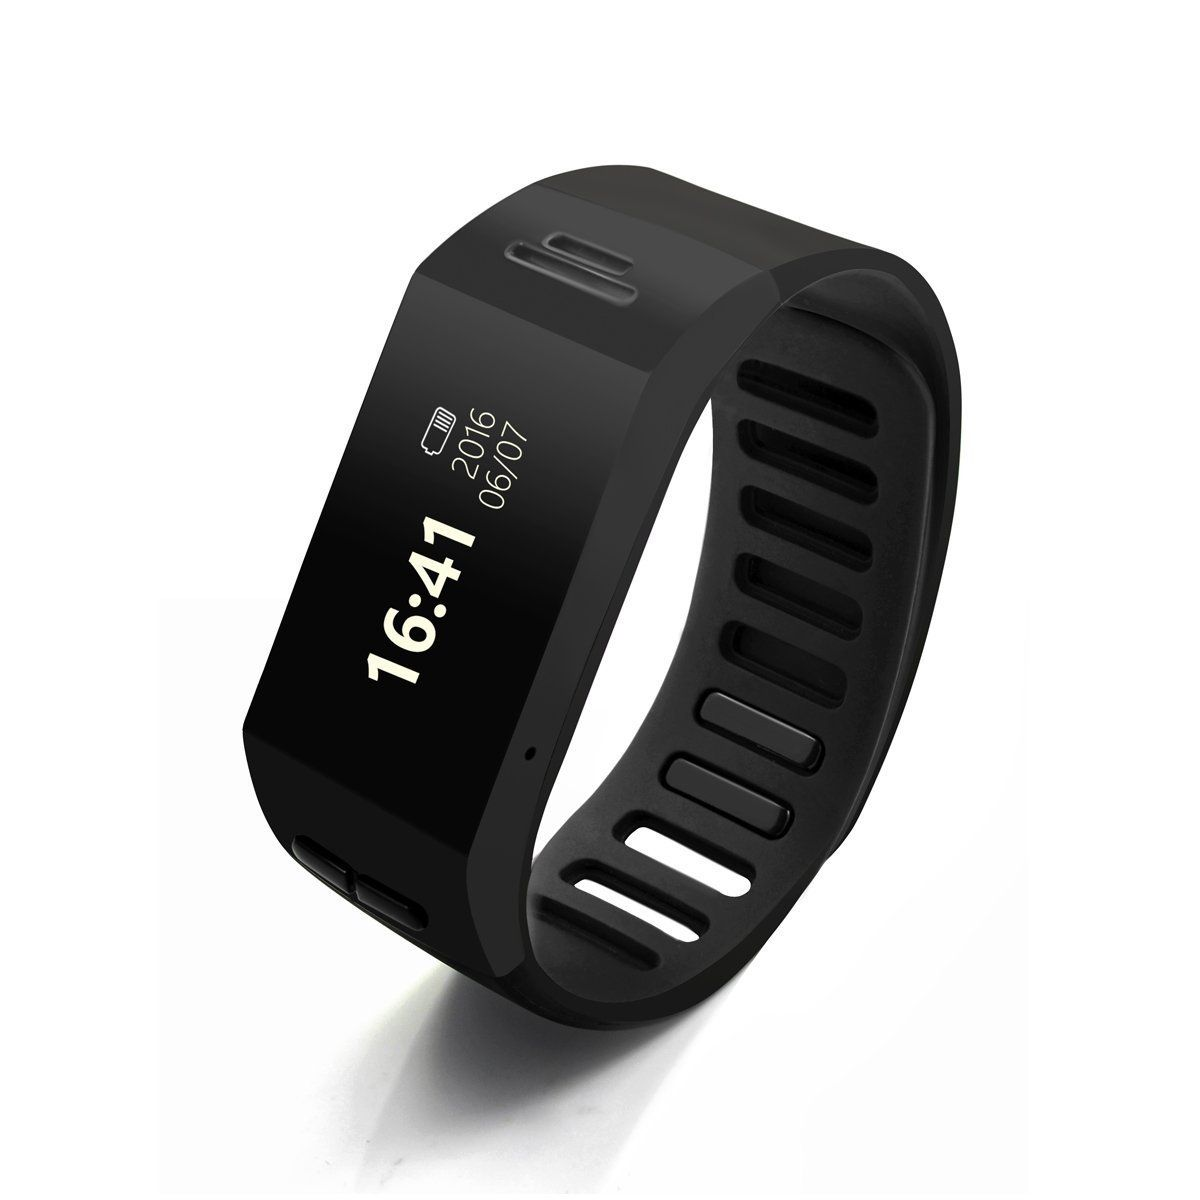 Plustore Bluetooth Watch Wrist Watch Phone with Make calls/Support eleven languages/3.5mm port -- Click image to review more details.